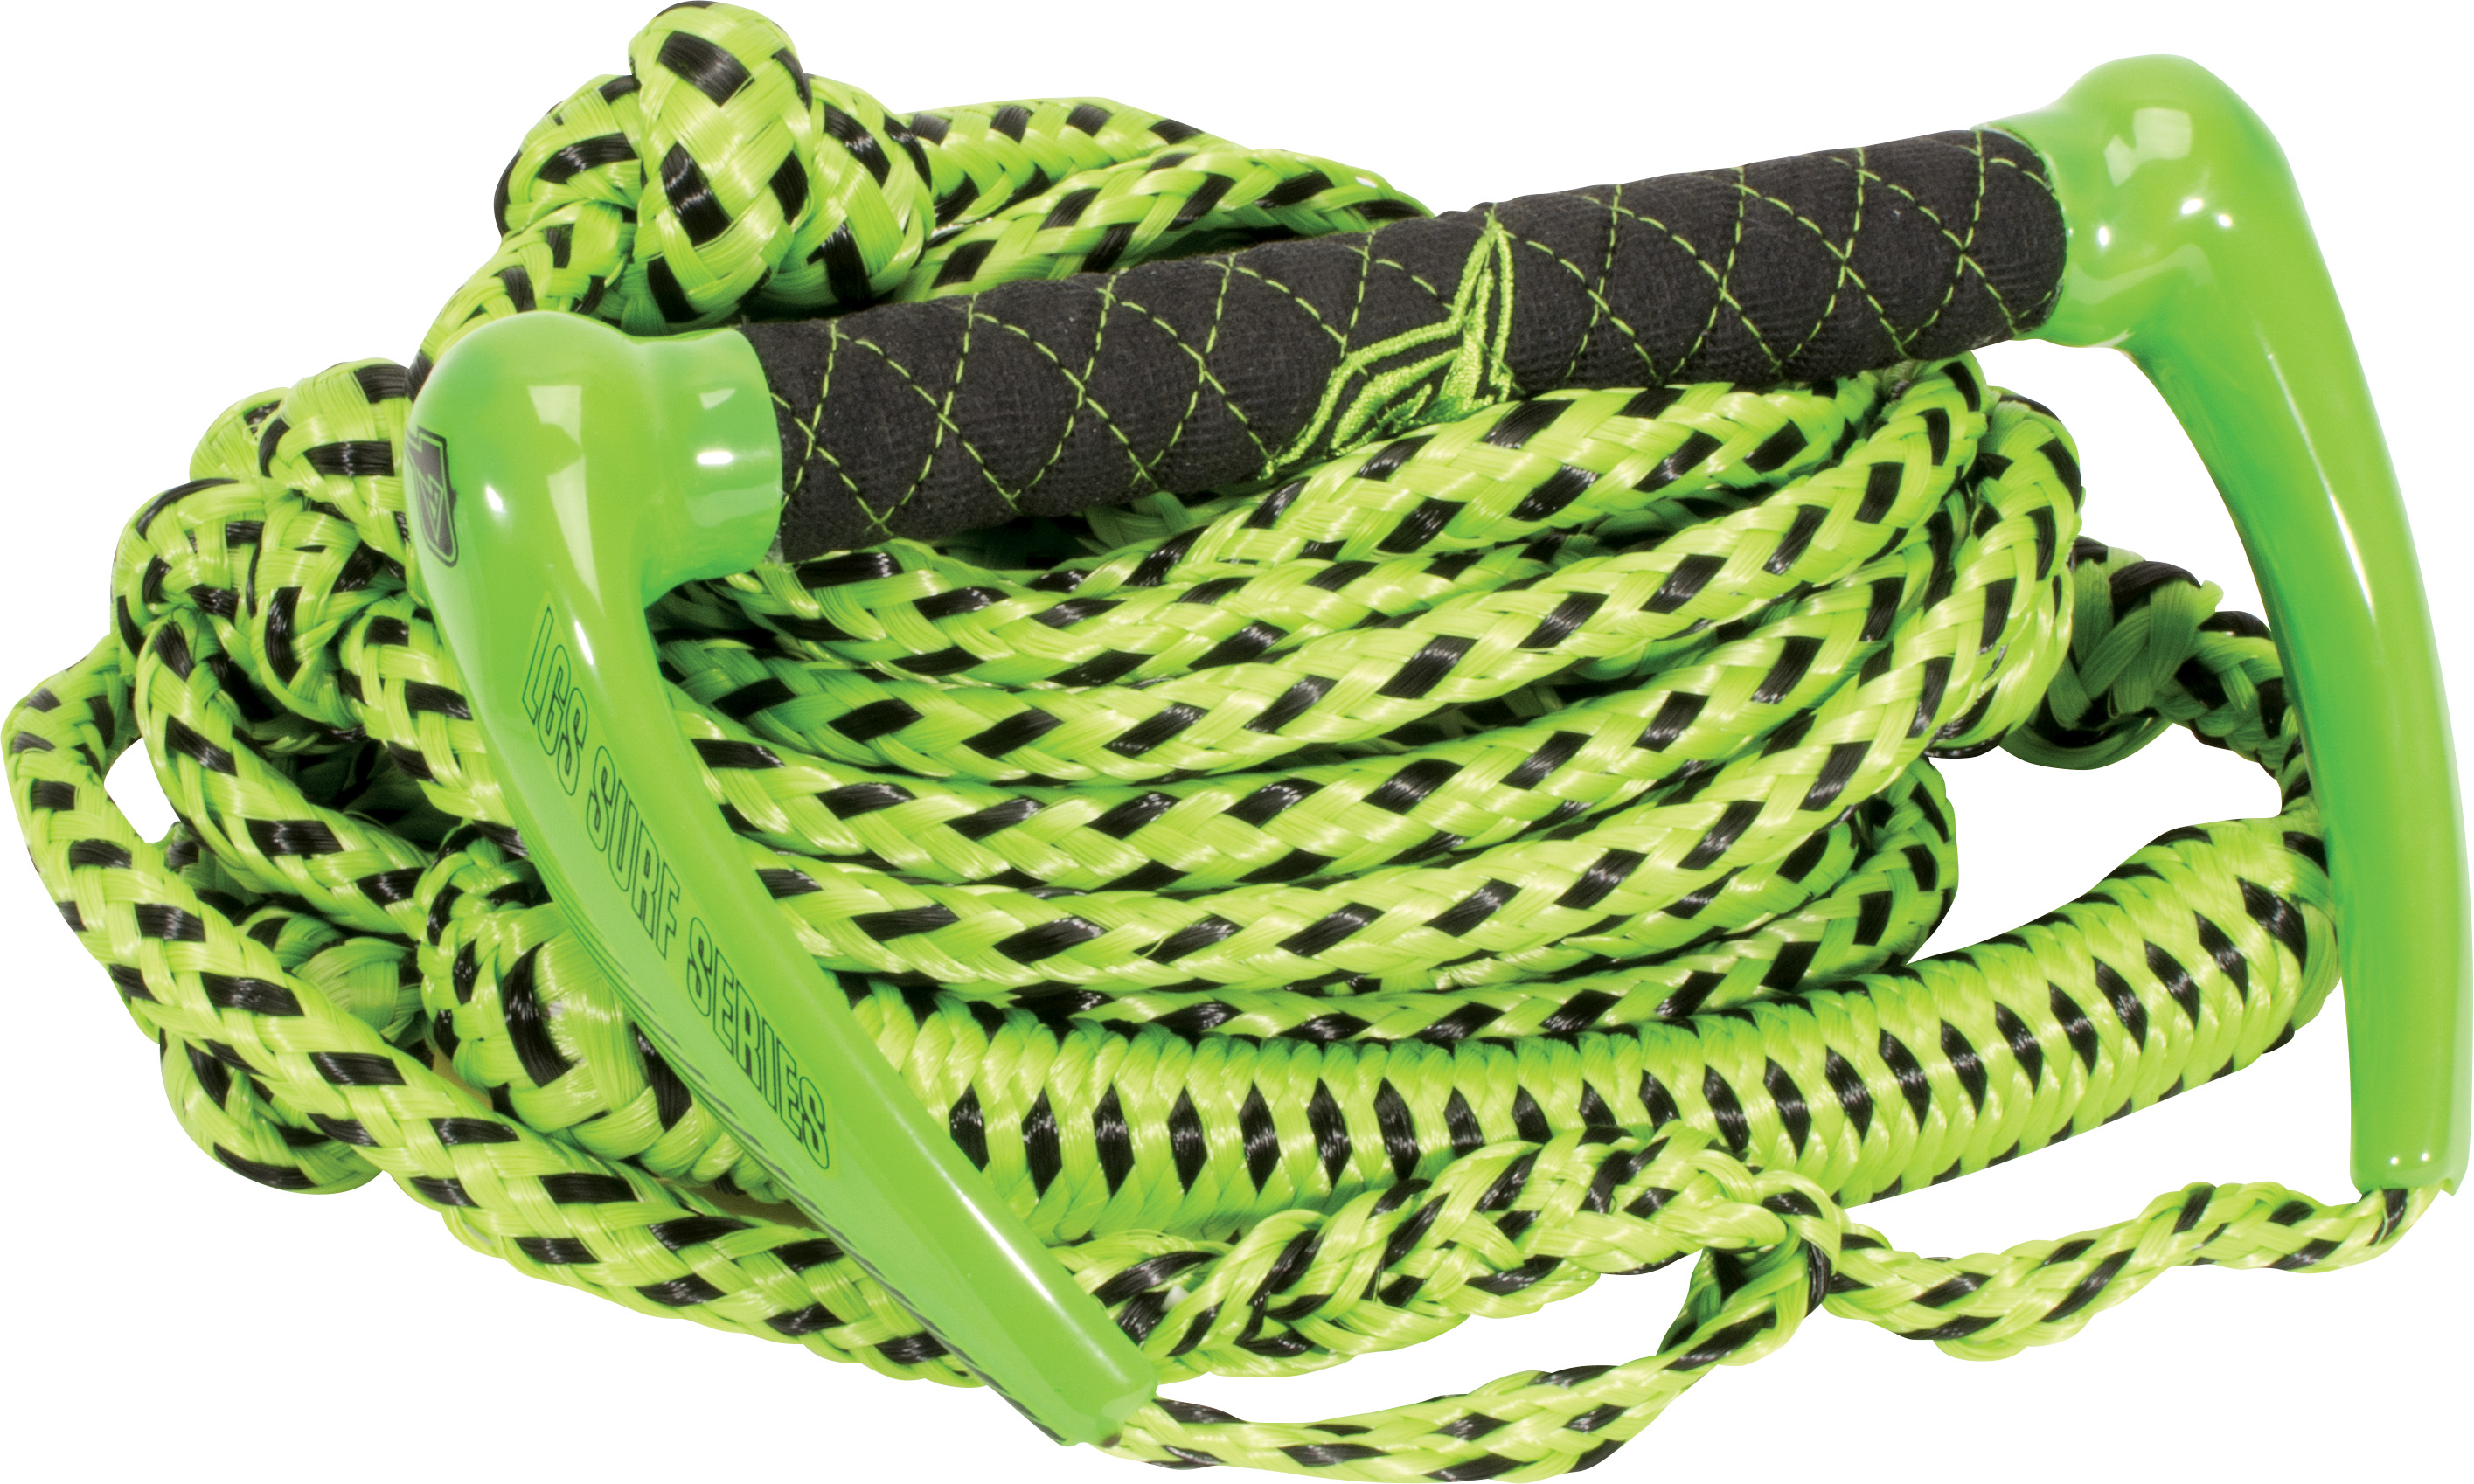 25' LGS BUNGEE SURF ROPE W/HANDLE PACKAGE - GREEN PRO LINE 2018